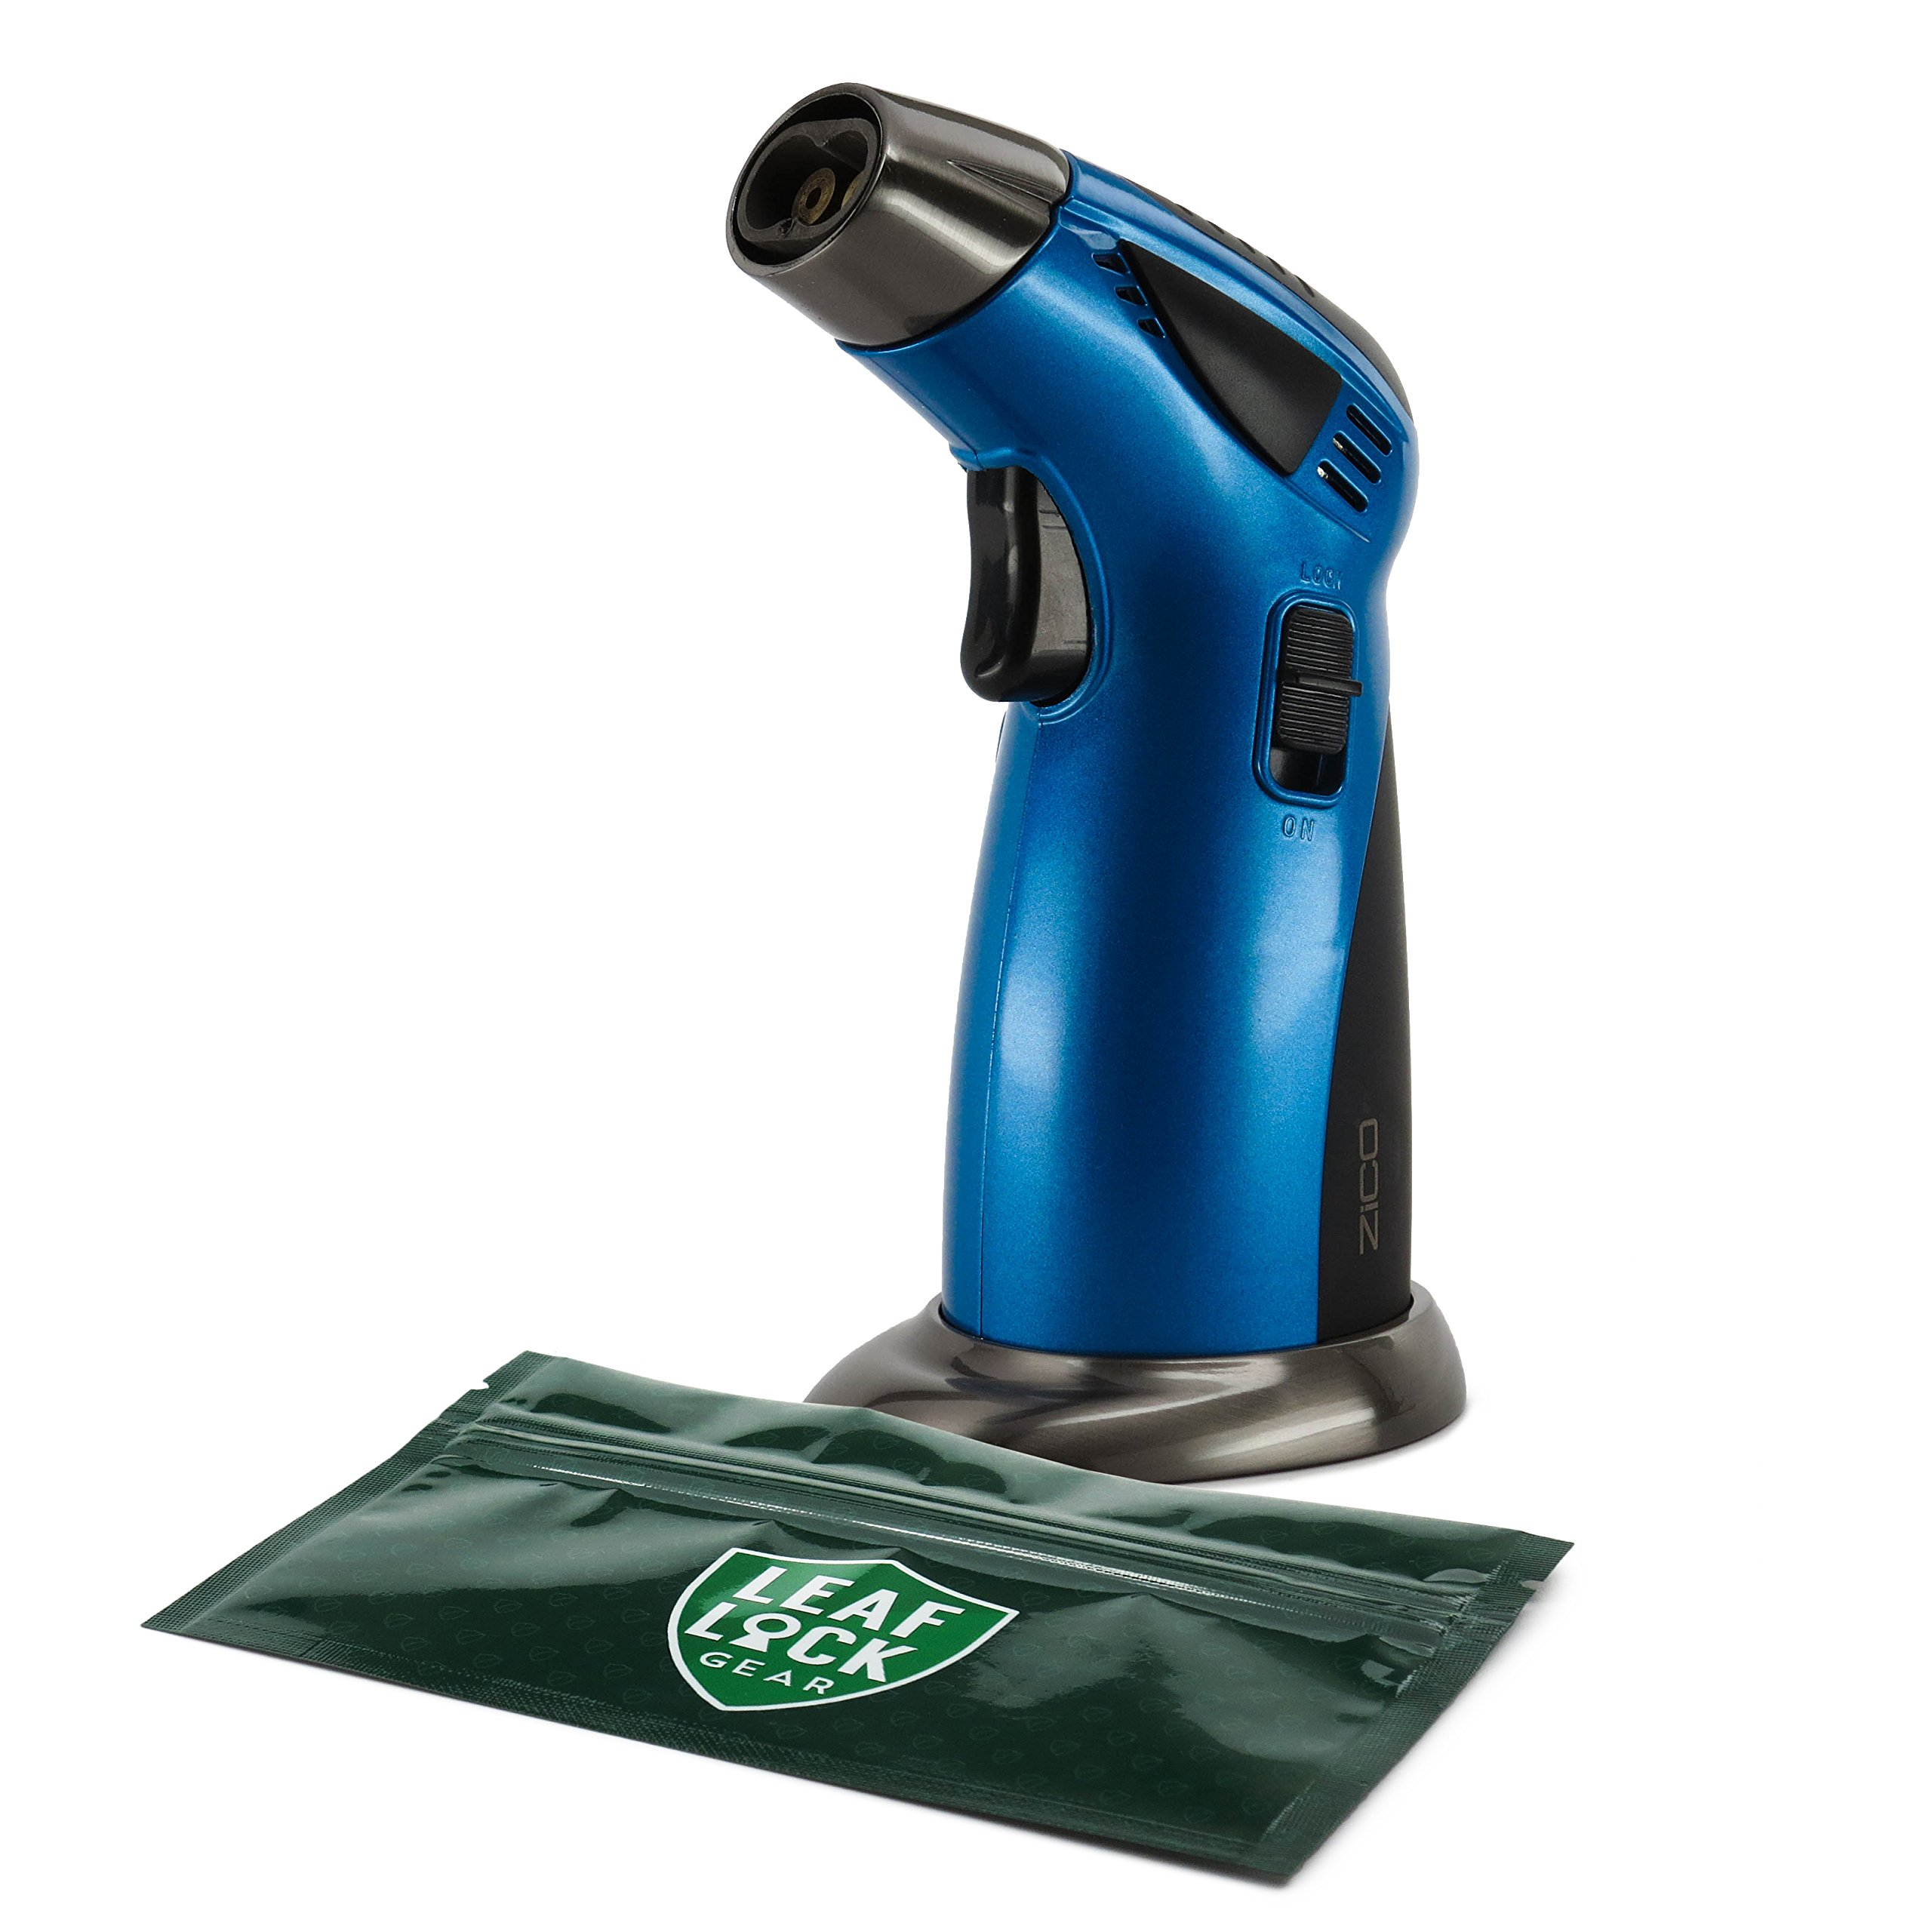 Zico MT39 Table Top Torch Lighter (Blue) with Leaf Lock Gear Spill Proof Pouch by Zico, Leaf Lock Gear (Image #1)